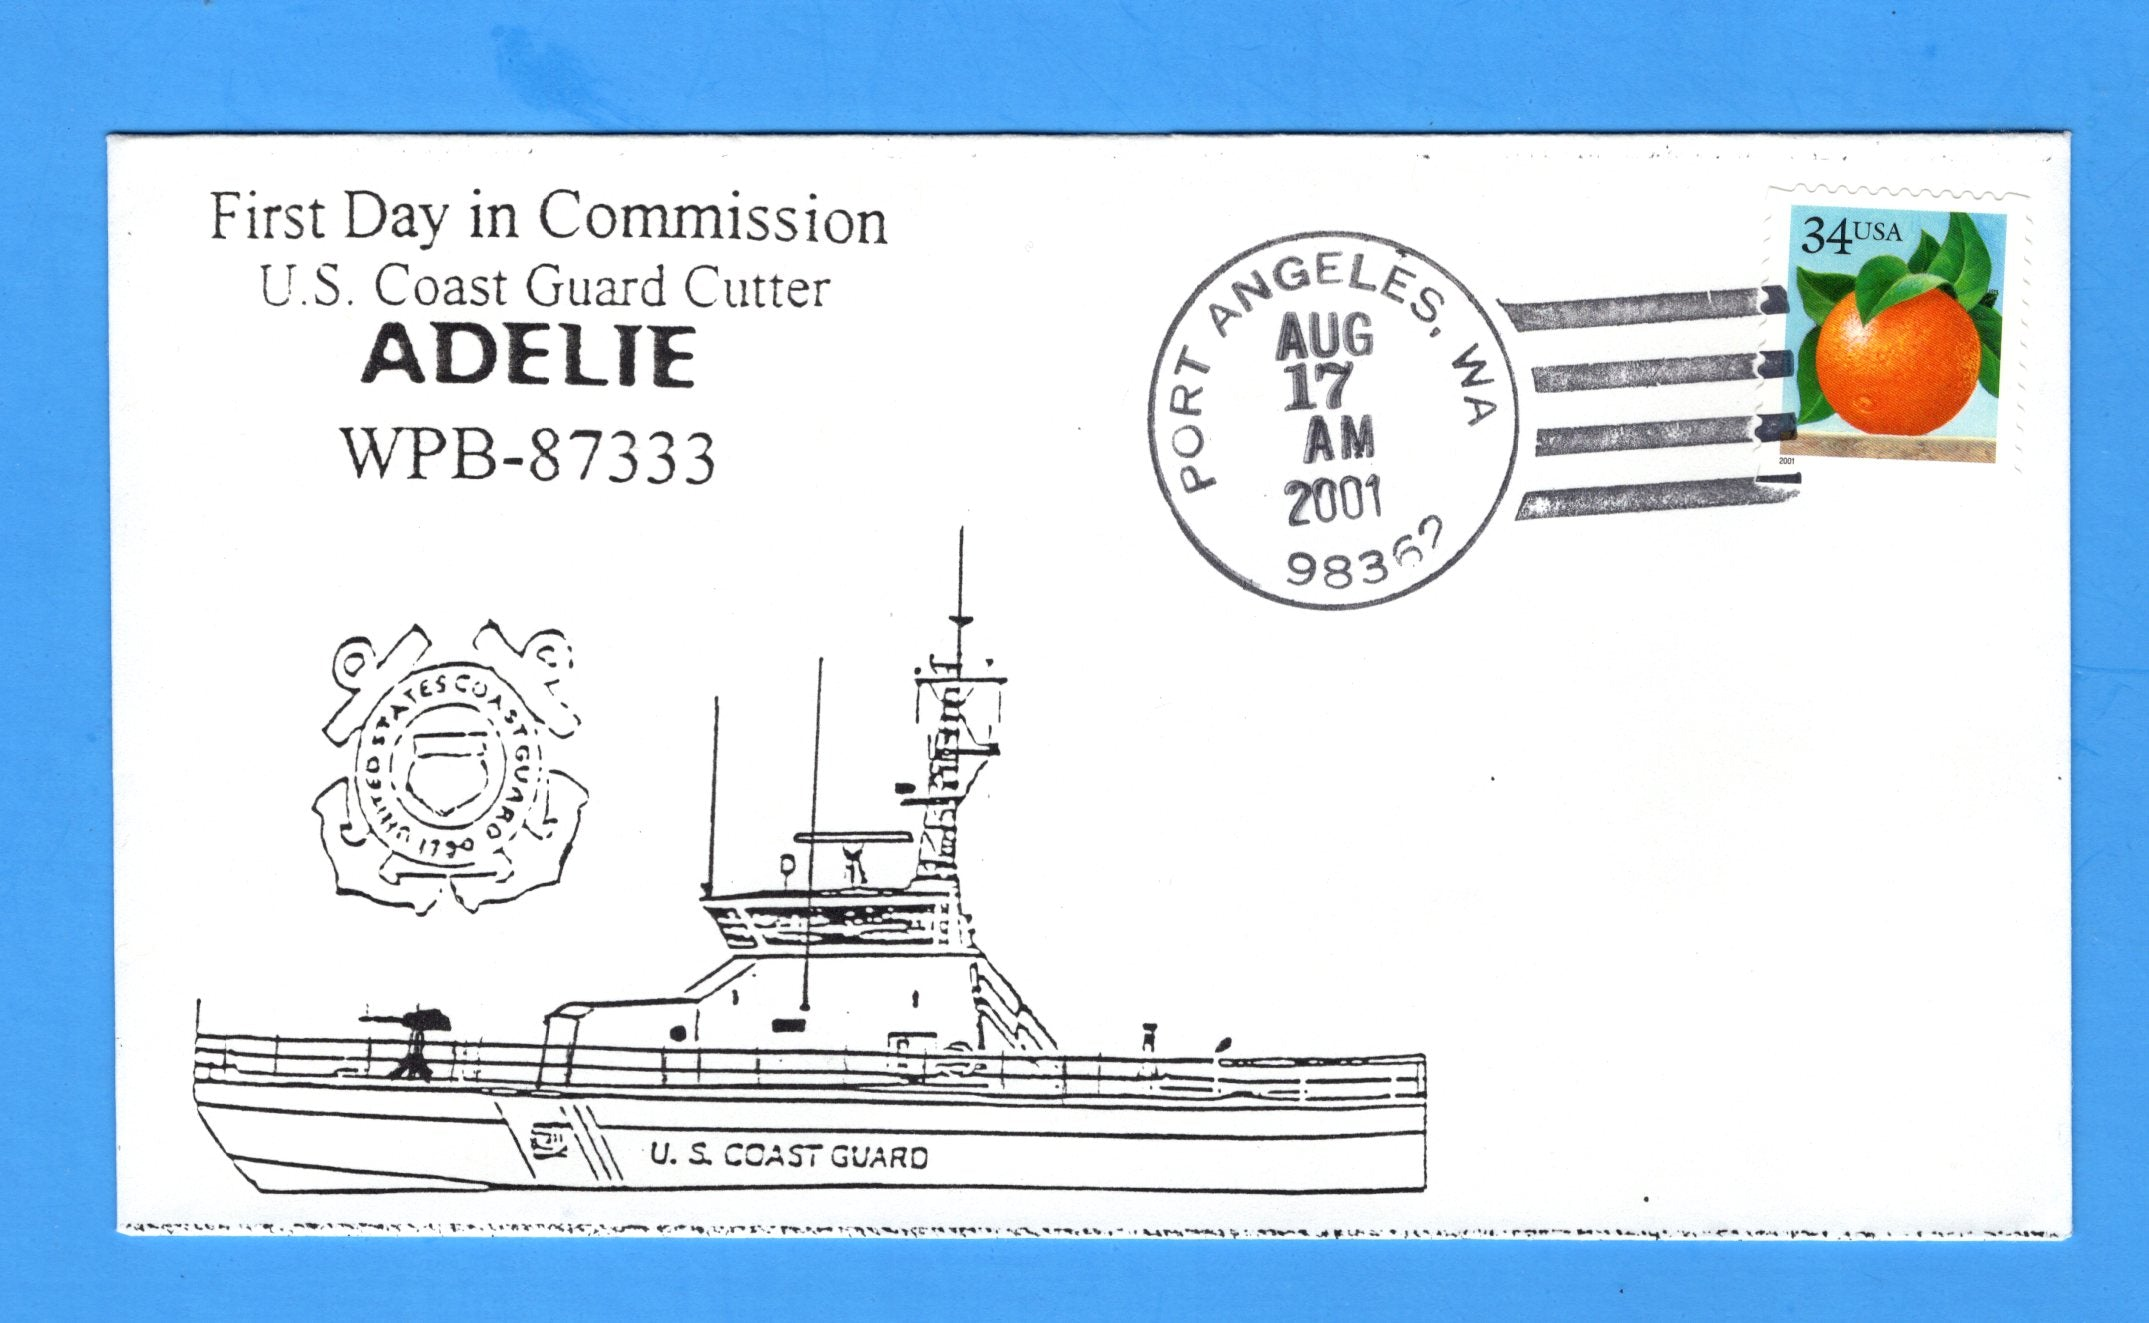 USCGC Adelie WPB-87333 First Day in Commission August 17, 2001 - Cachet by Bill Everett